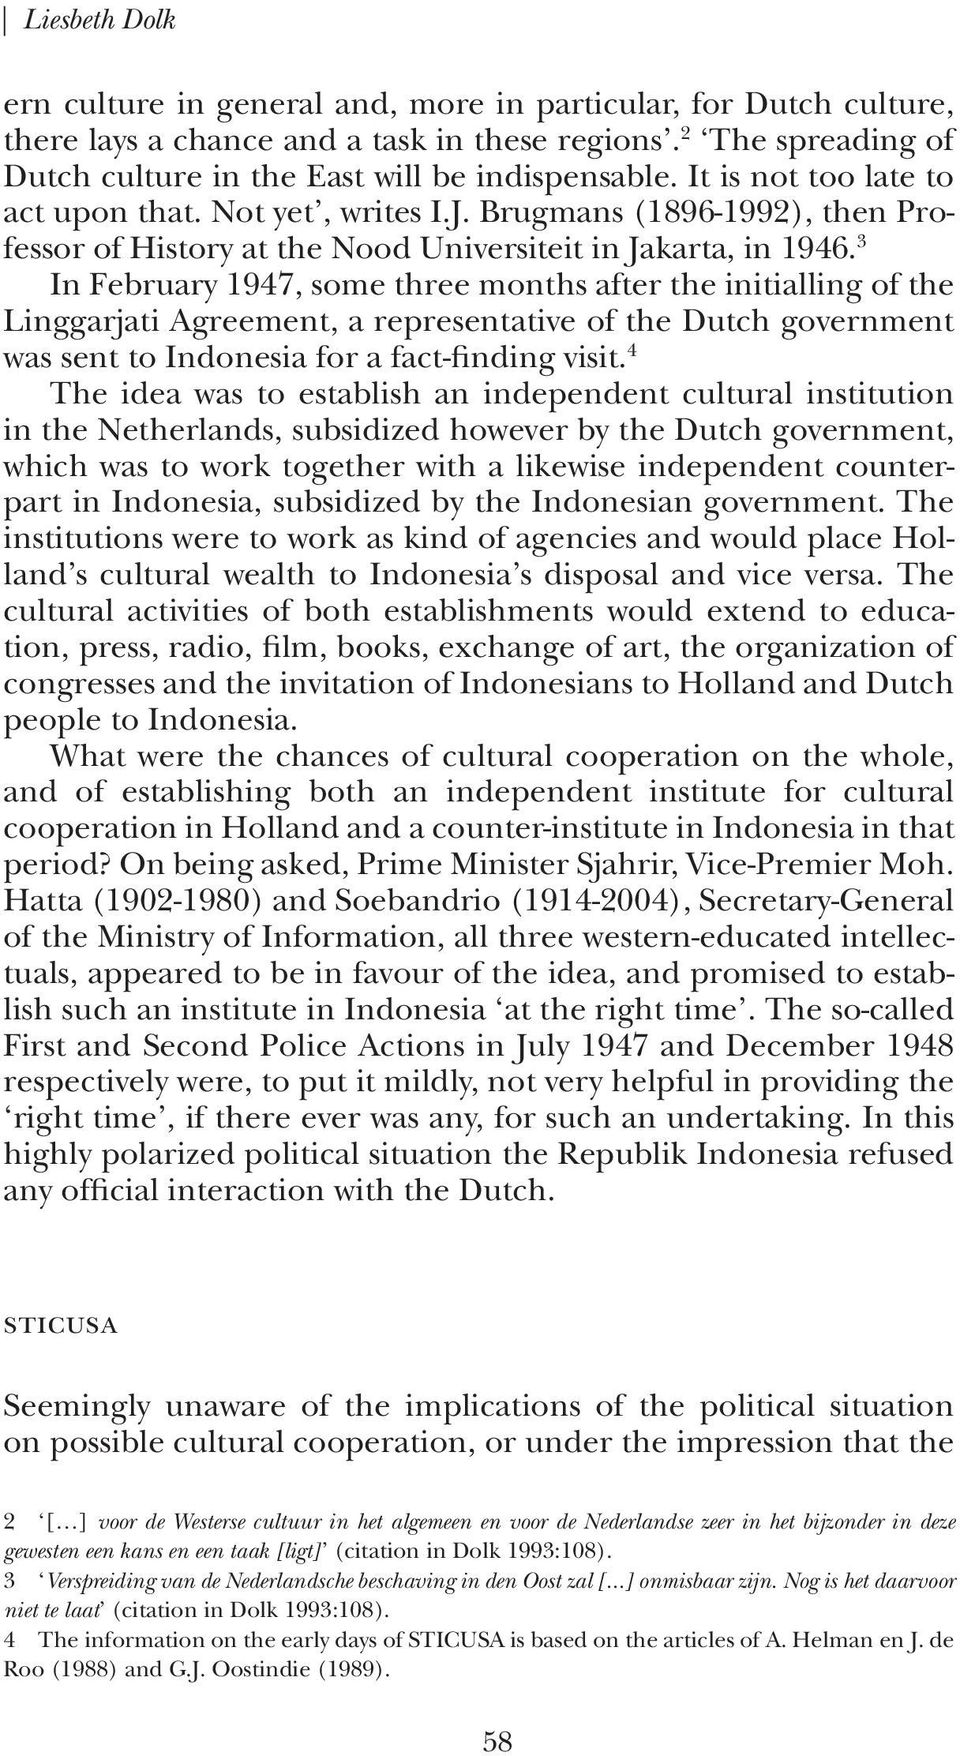 3 In February 1947, some three months after the initialling of the Linggarjati Agreement, a representative of the Dutch government was sent to Indonesia for a fact-finding visit.